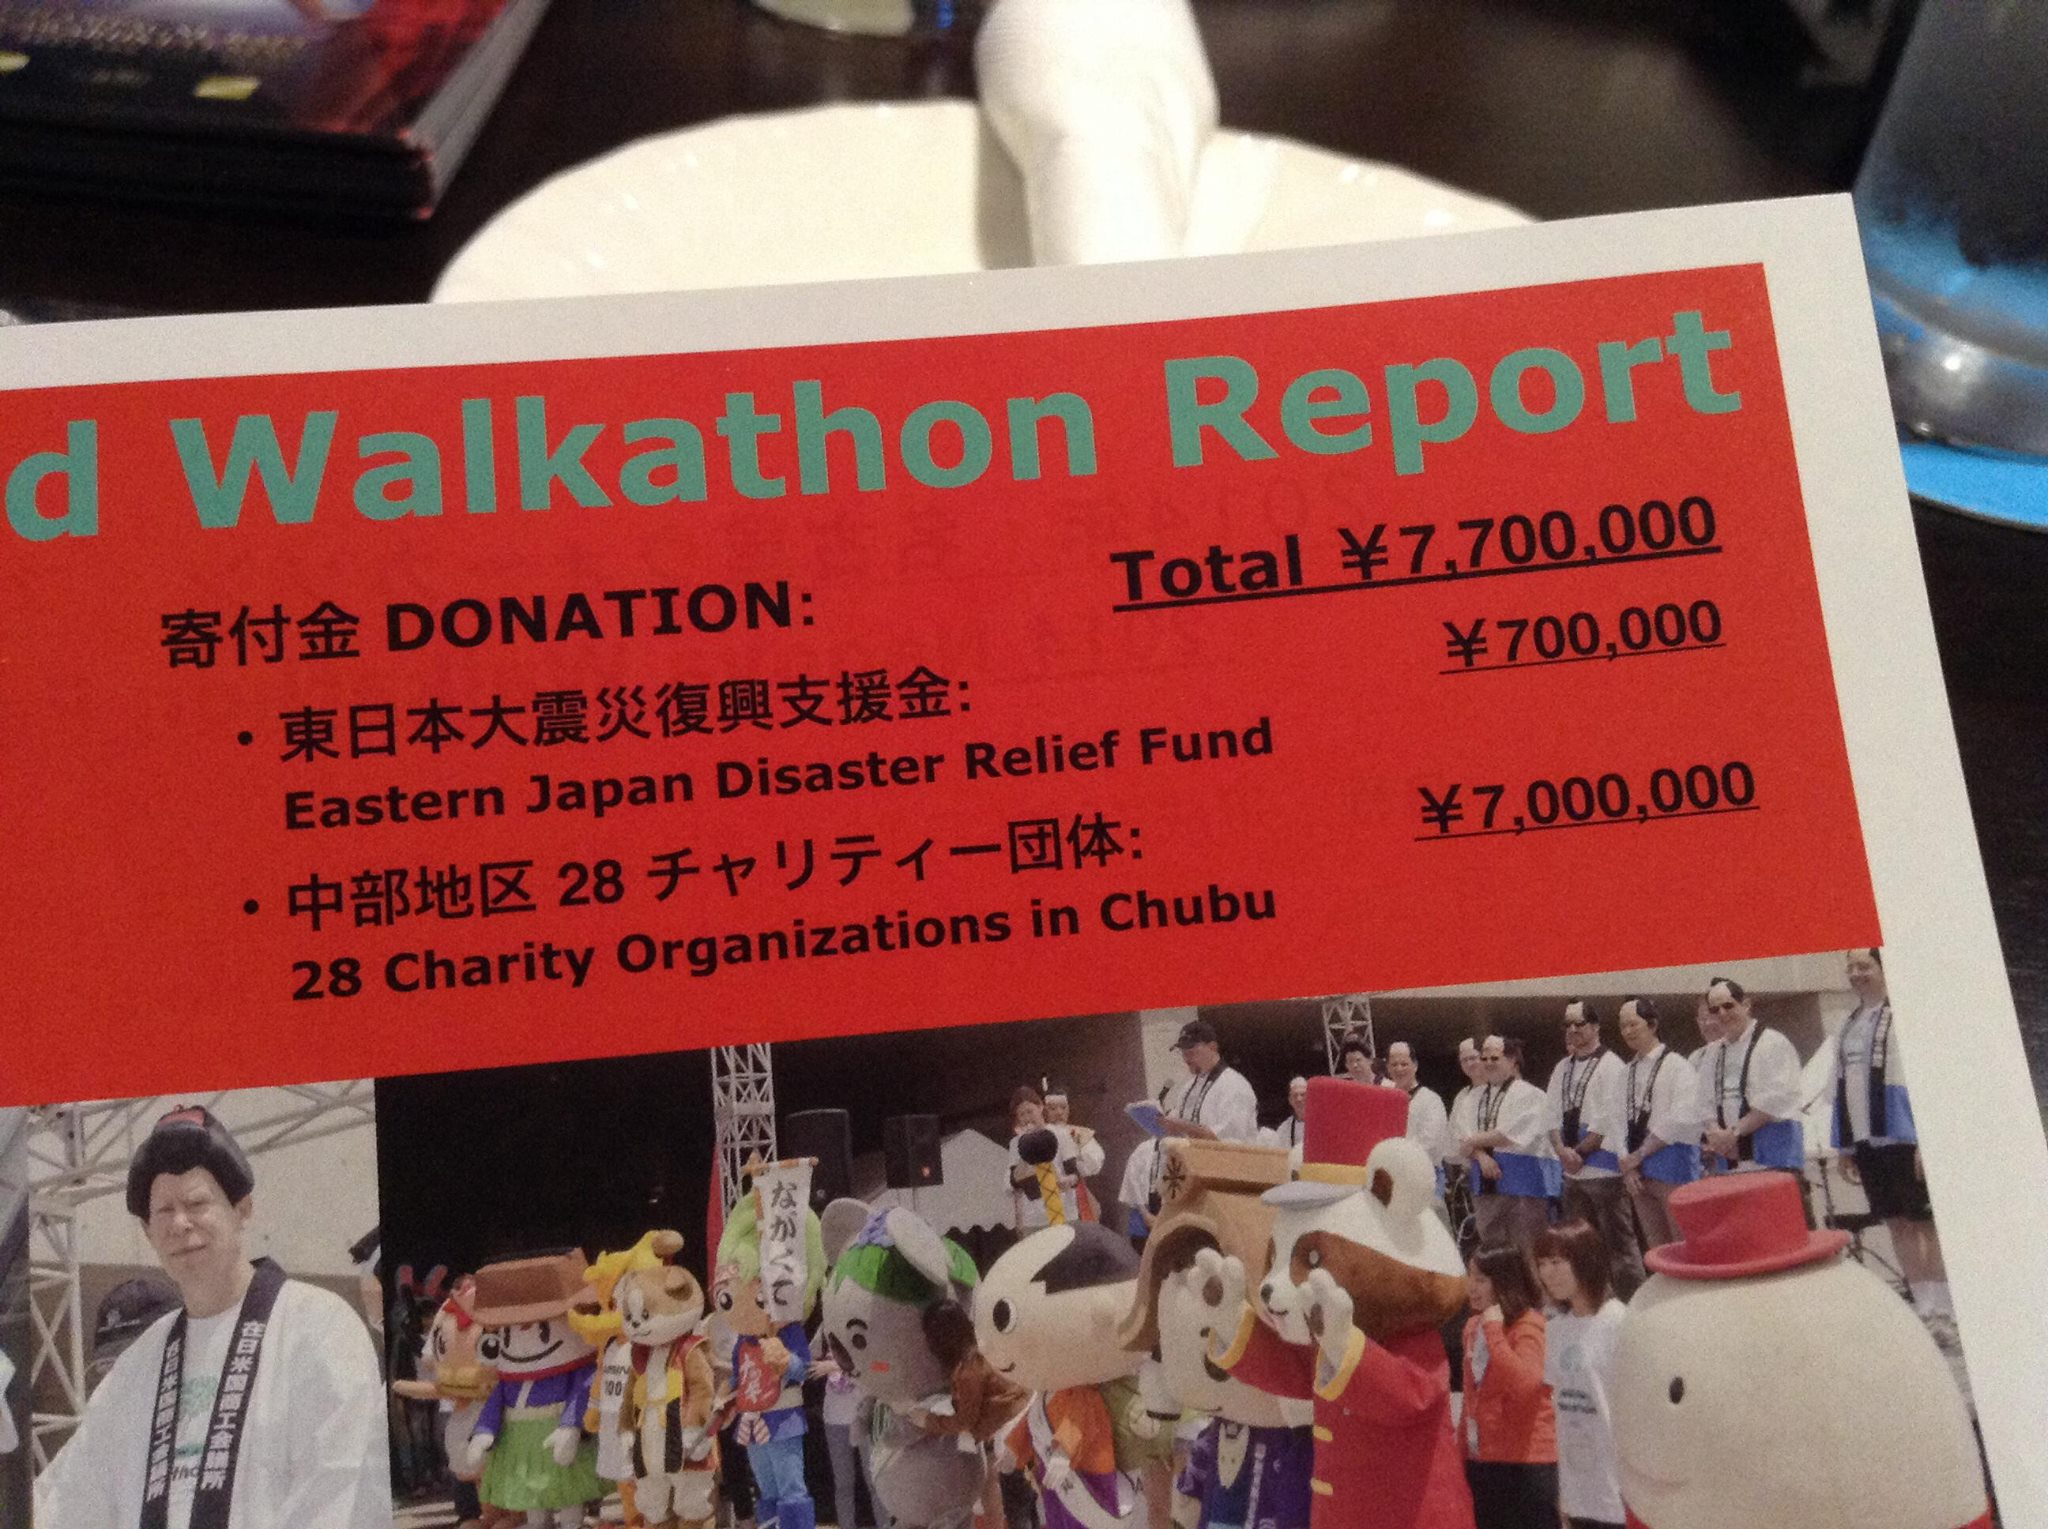 Walkathon report